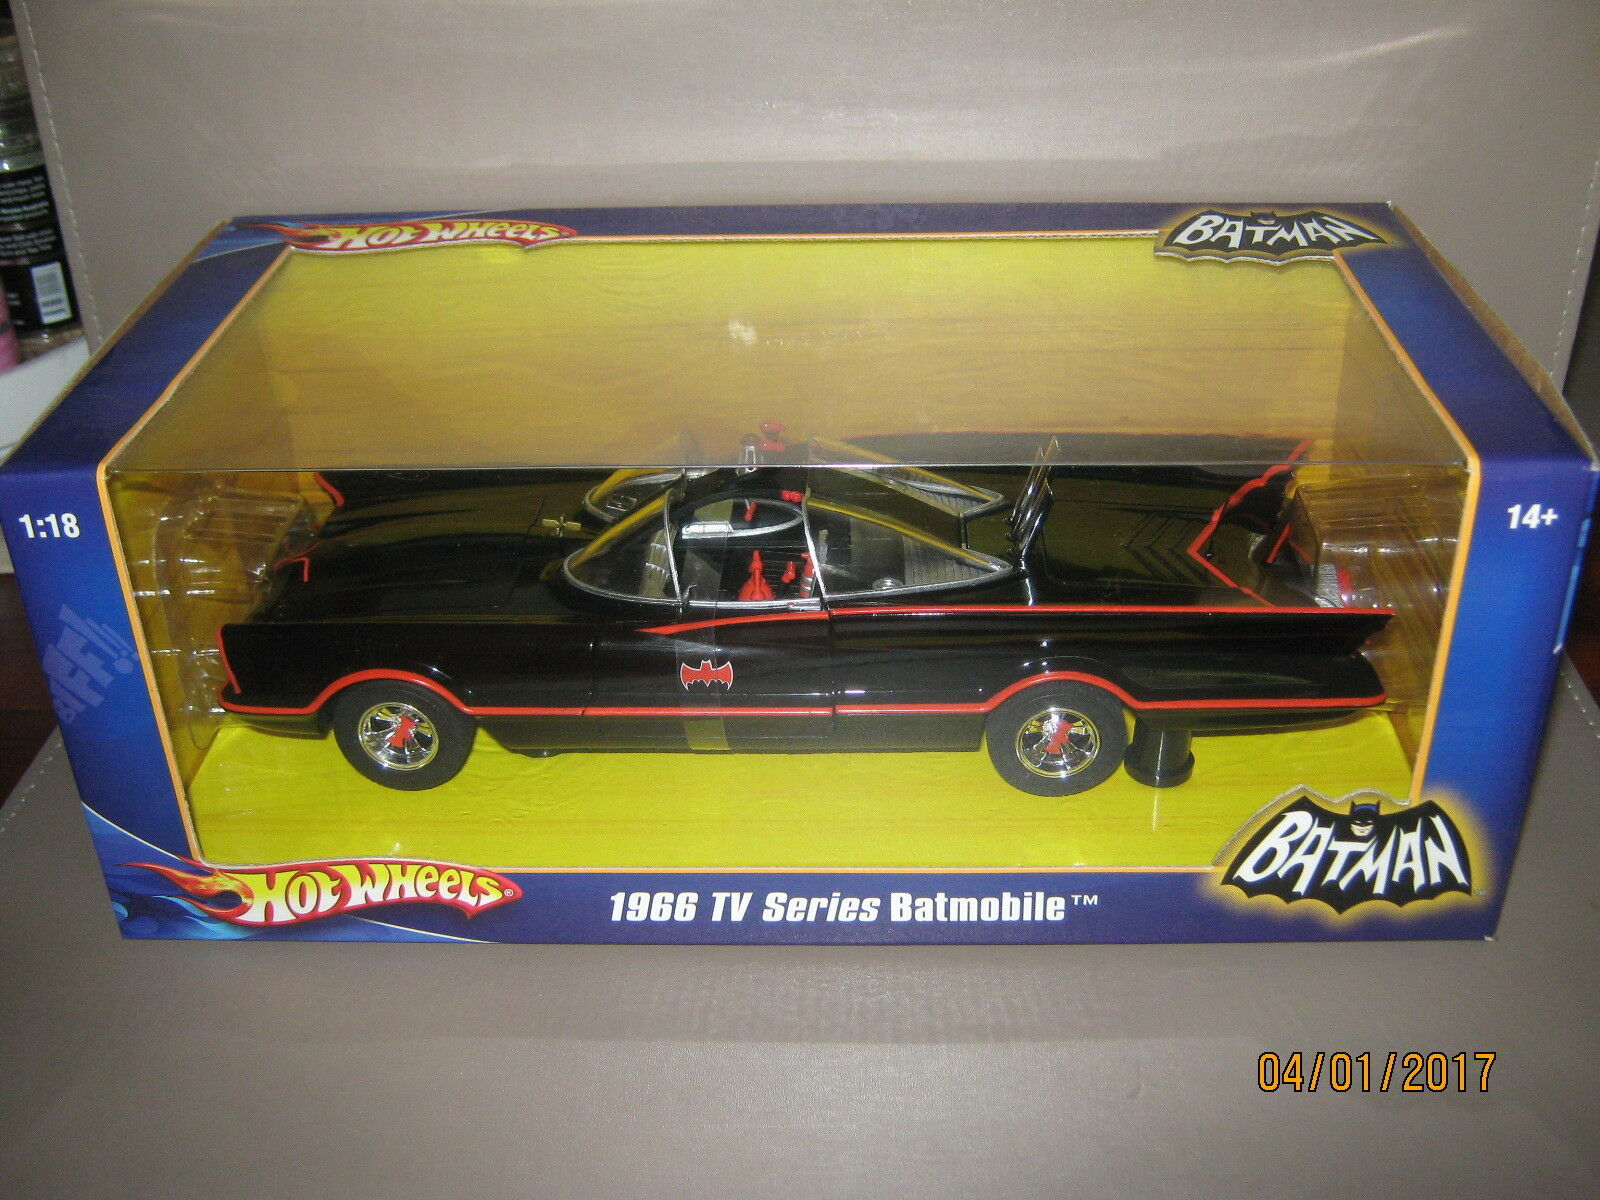 Hot wheels Batmobile  tv series 1966 1/18 1st series made  2007 Mint /Mint boxed